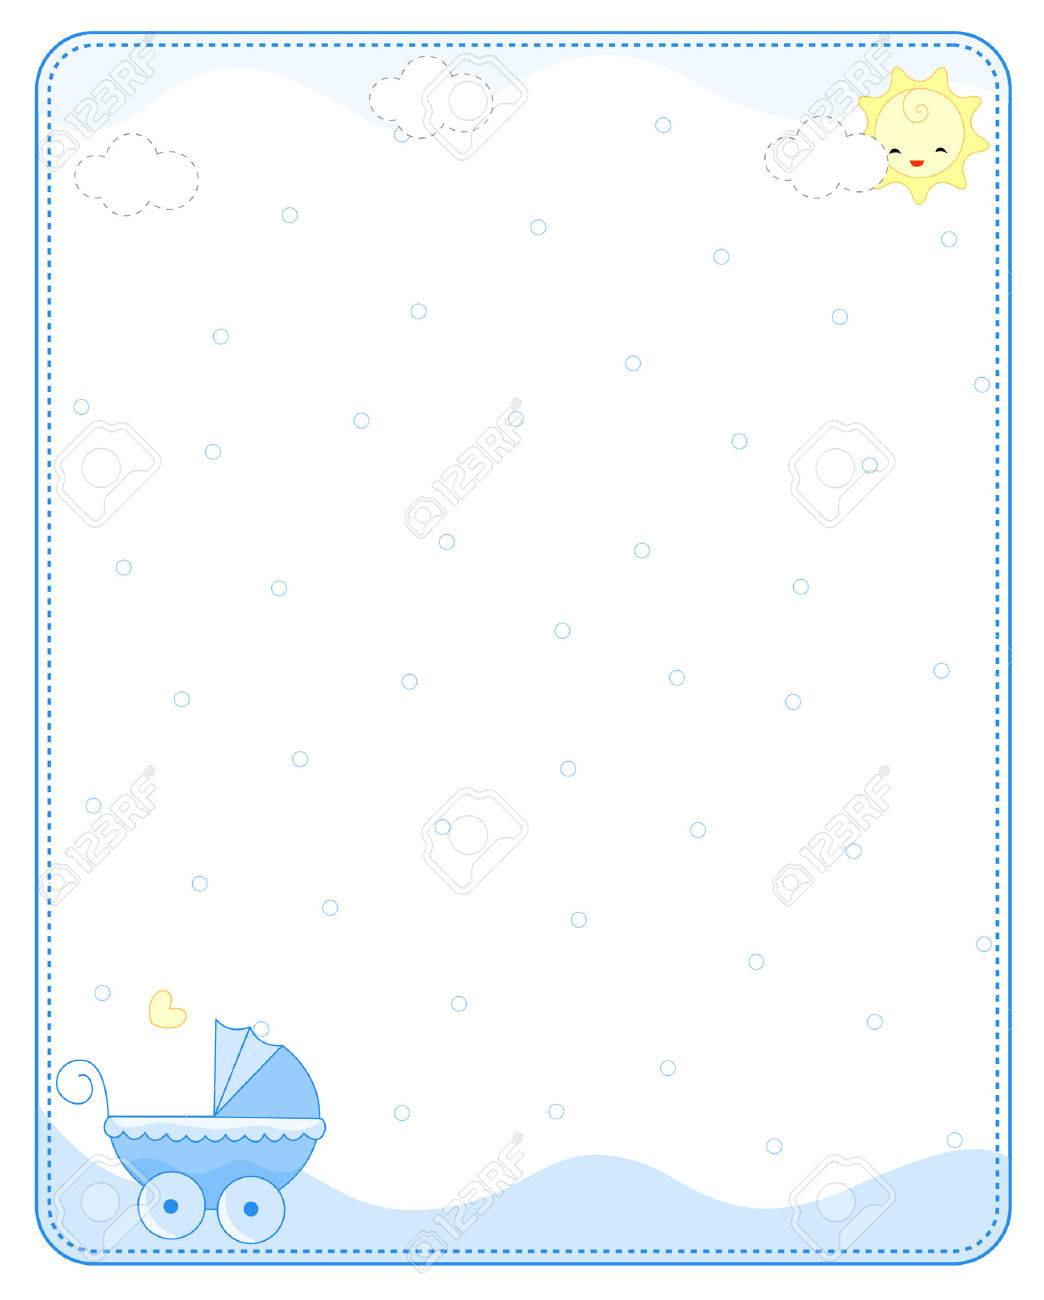 Baby Boy Arrival Announcement Party Invitation Card